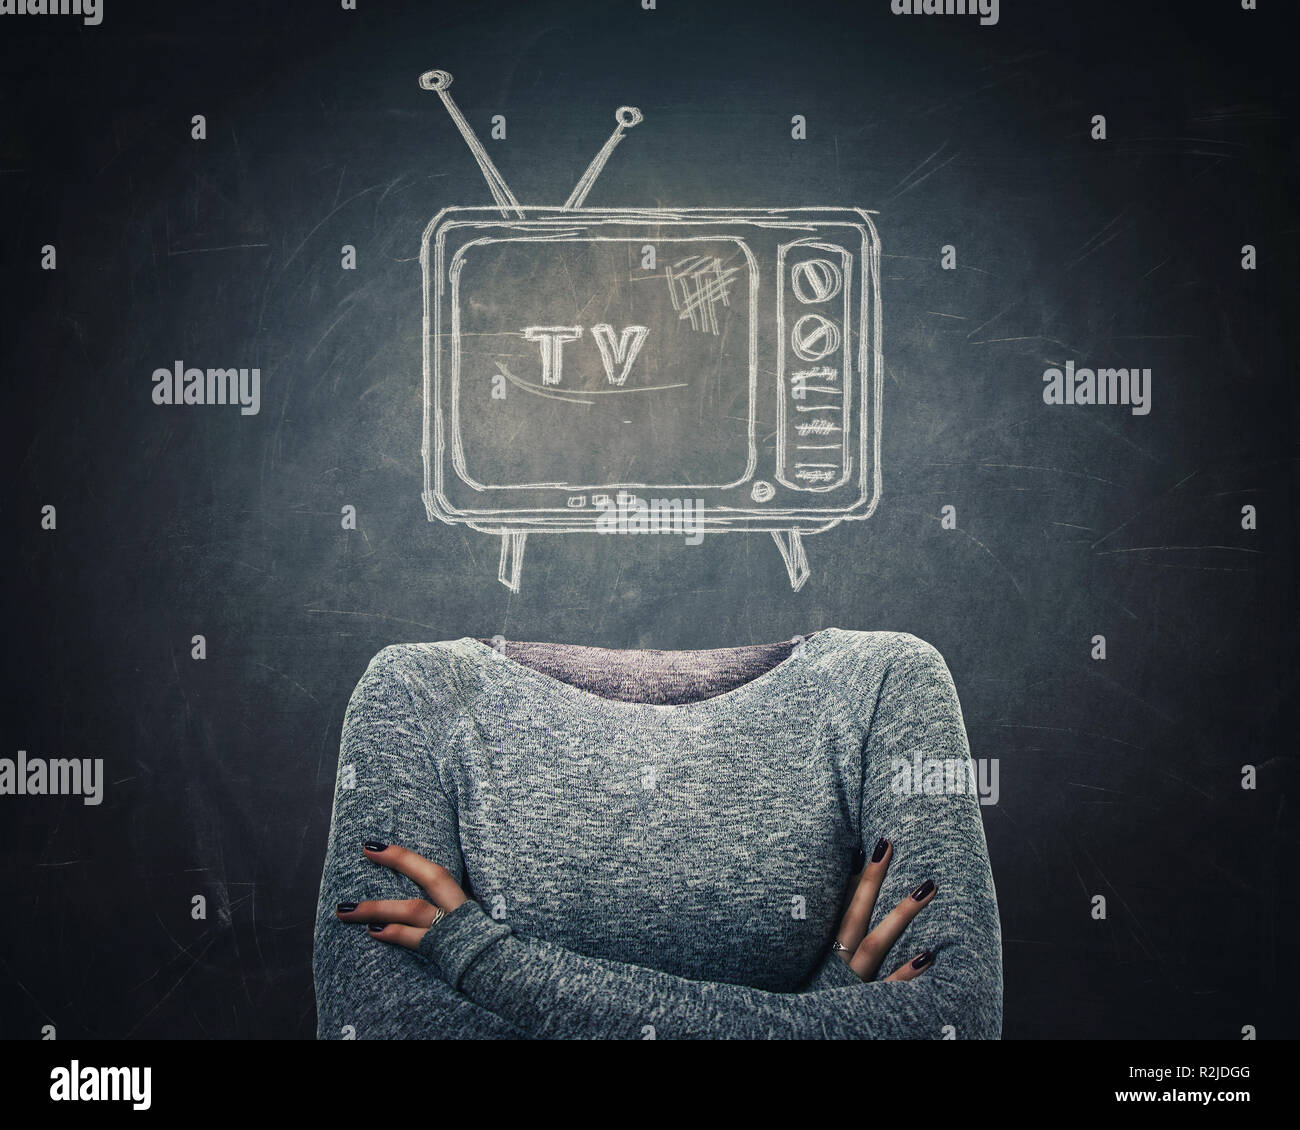 Surreal young addicted woman with crossed arms and tv icon sketch instead of head over blackboard background. Television manipulation and brainwashing - Stock Image